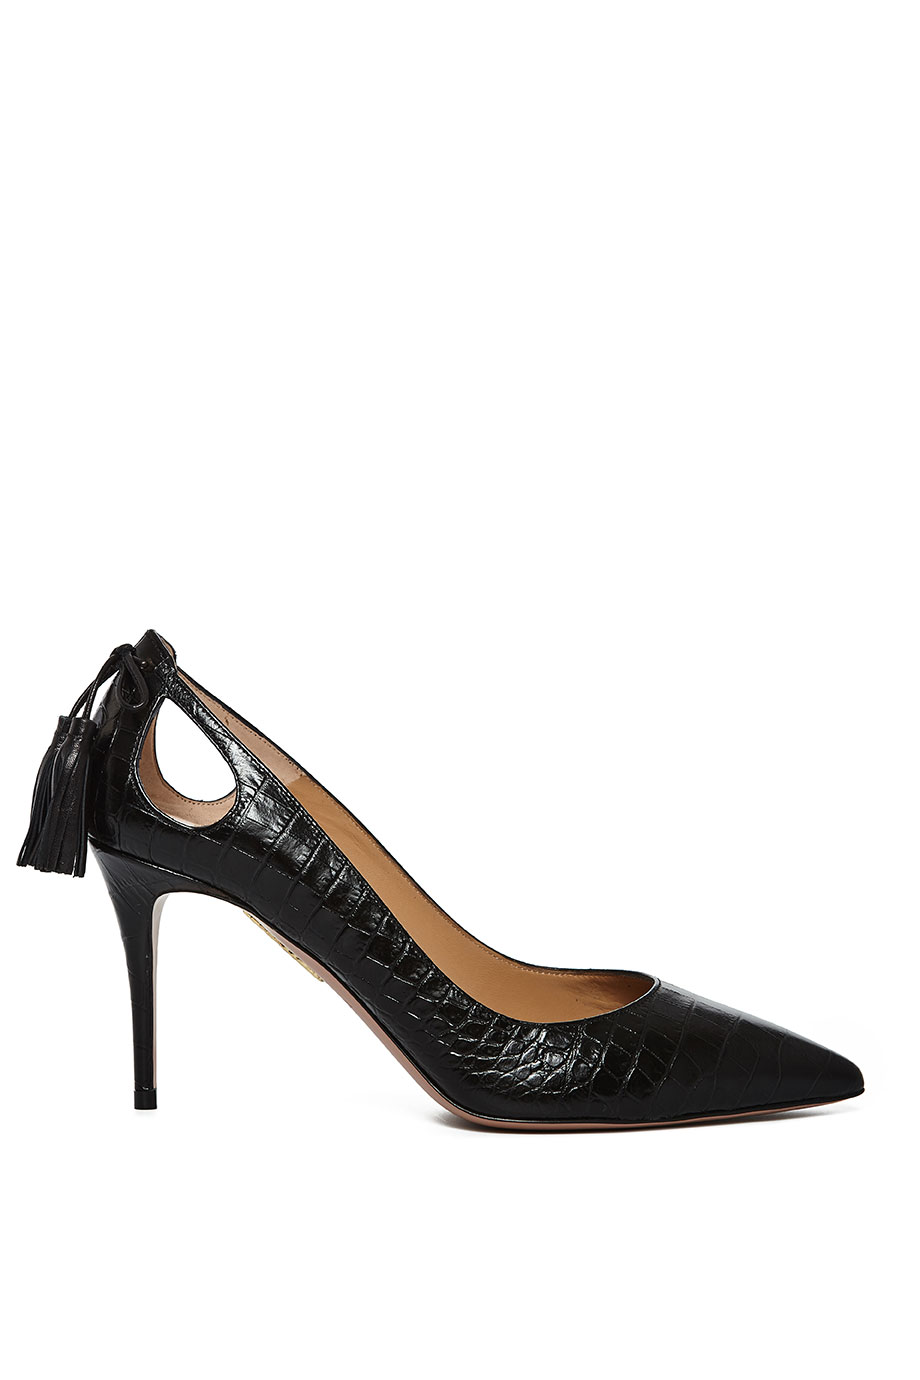 Forever Marilyn croc-print leather pumps